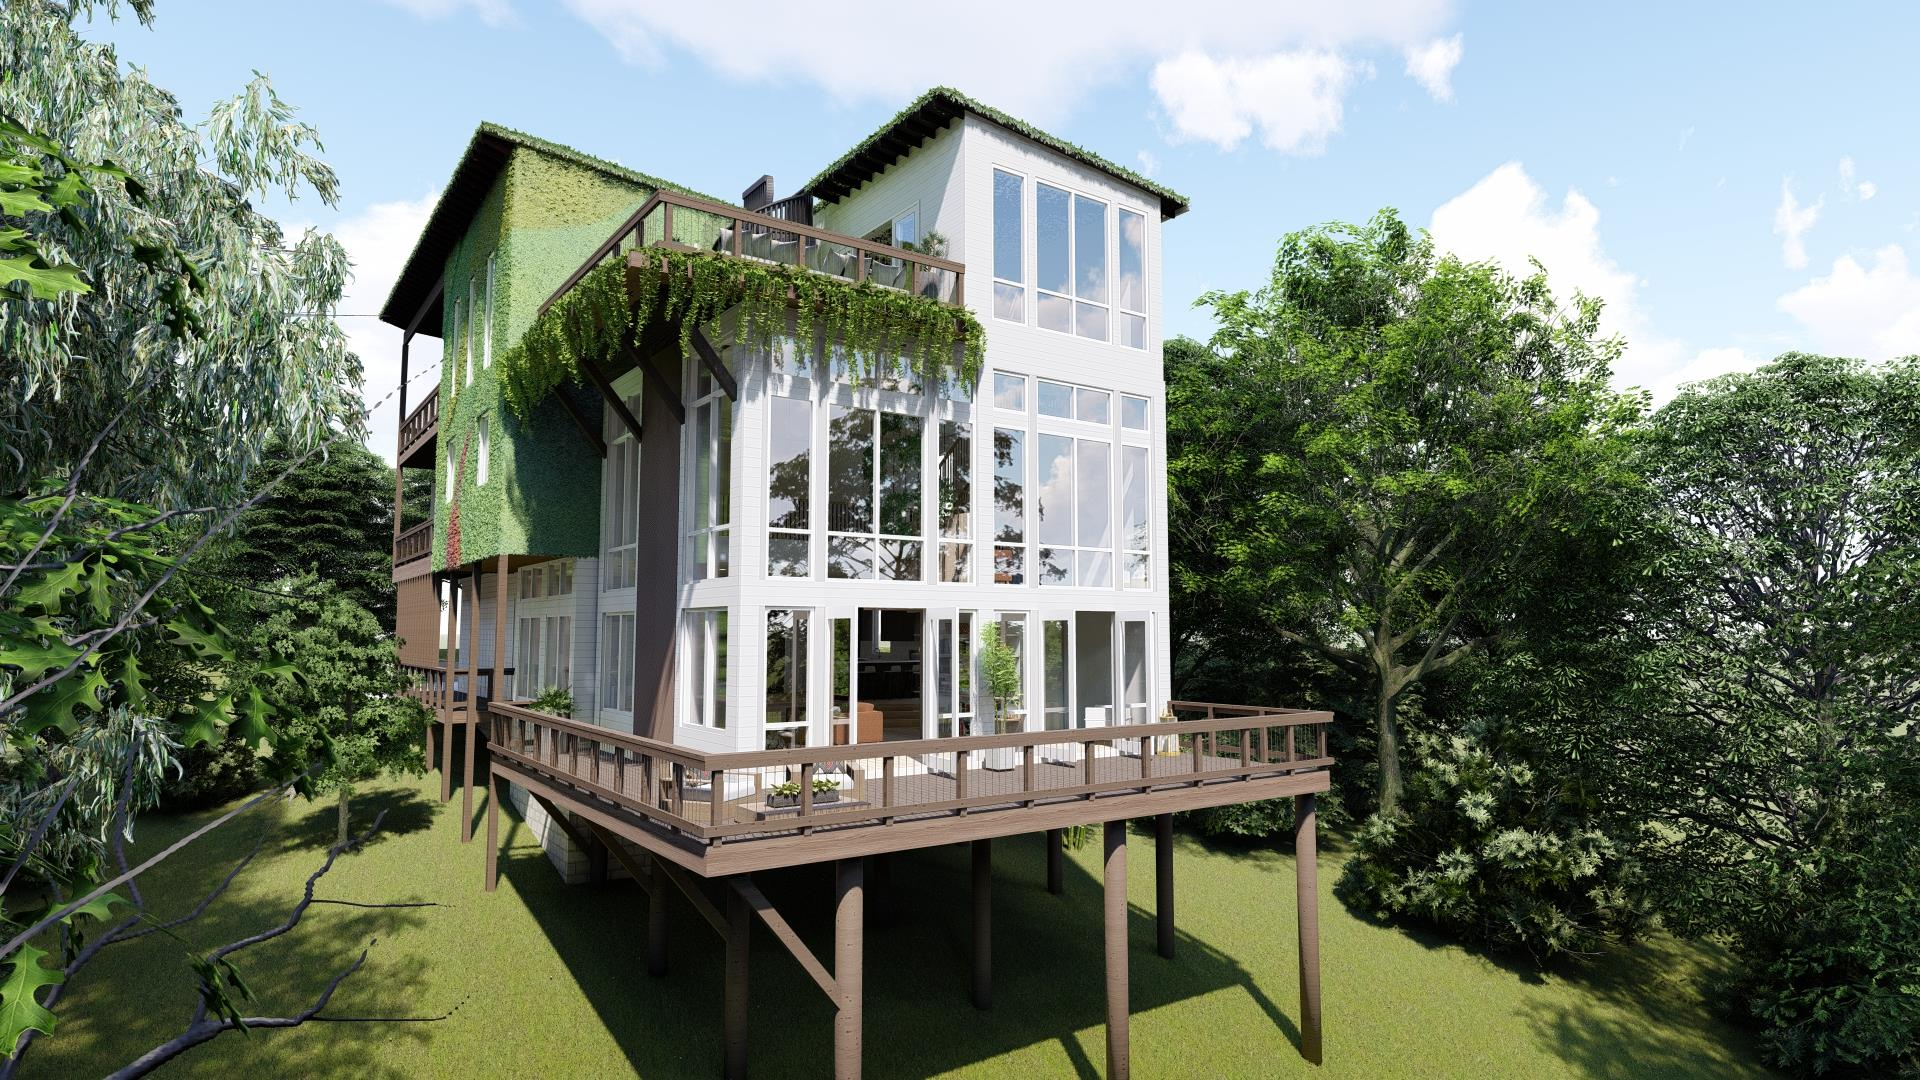 Most remarkable home in Nashville. Unobstructed VIEW OF DOWNTOWN. Eco friendly, in the park, cliffside overlooking downtown and the Cumberland River. Rooftop deck, green roof and living walls. Interior storm shelter included! Attached airbnbable space/ mother in law suite. Customizable.